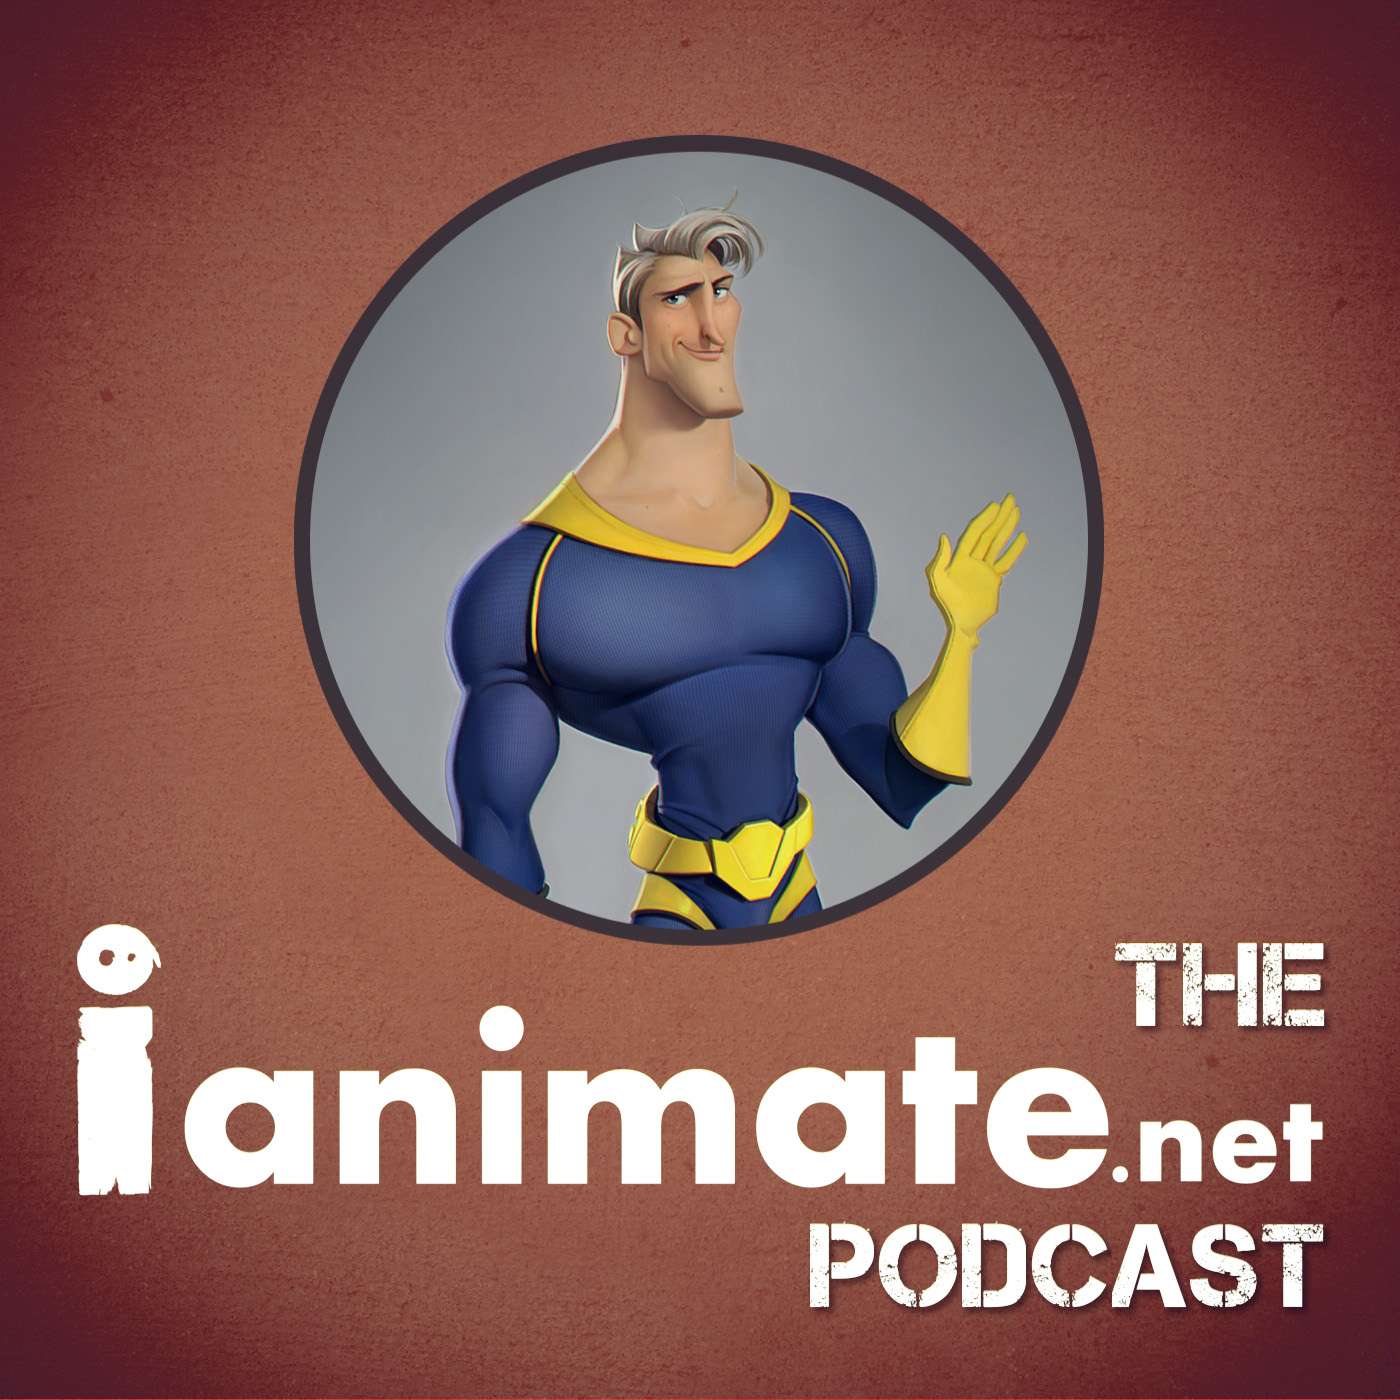 The iAnimate.net Podcasts